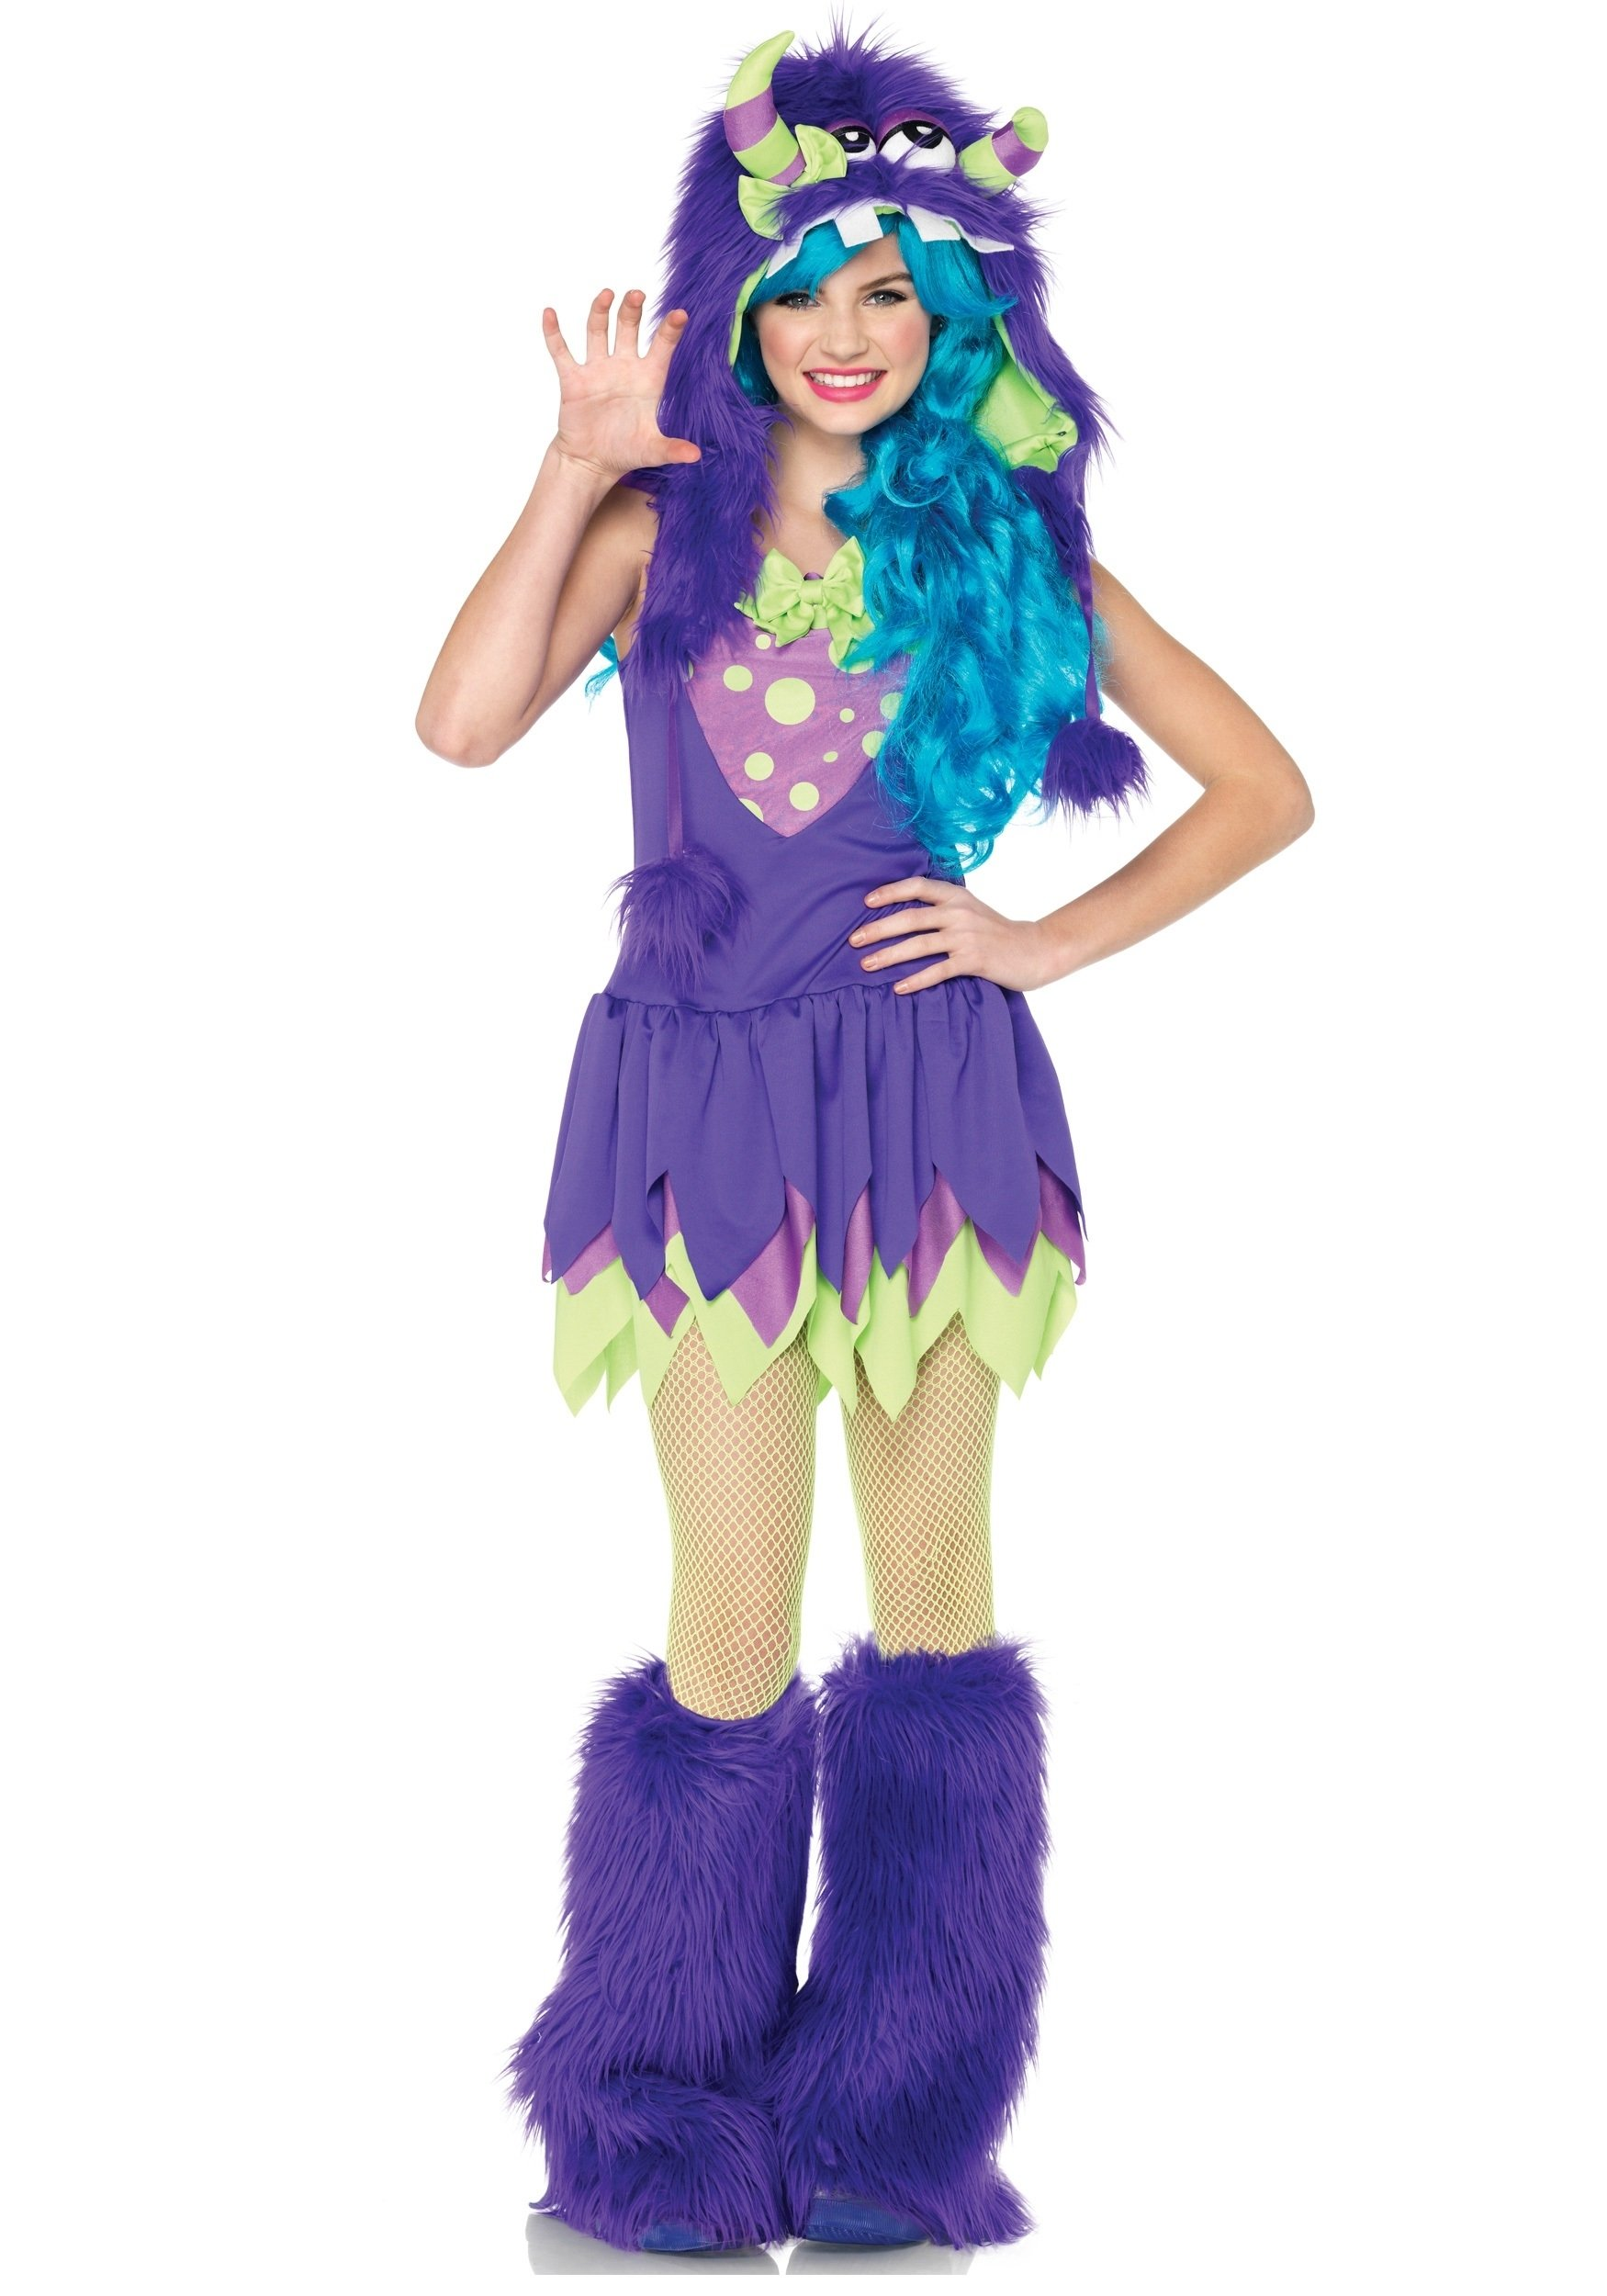 10 most popular cute halloween costume ideas for teenage girls